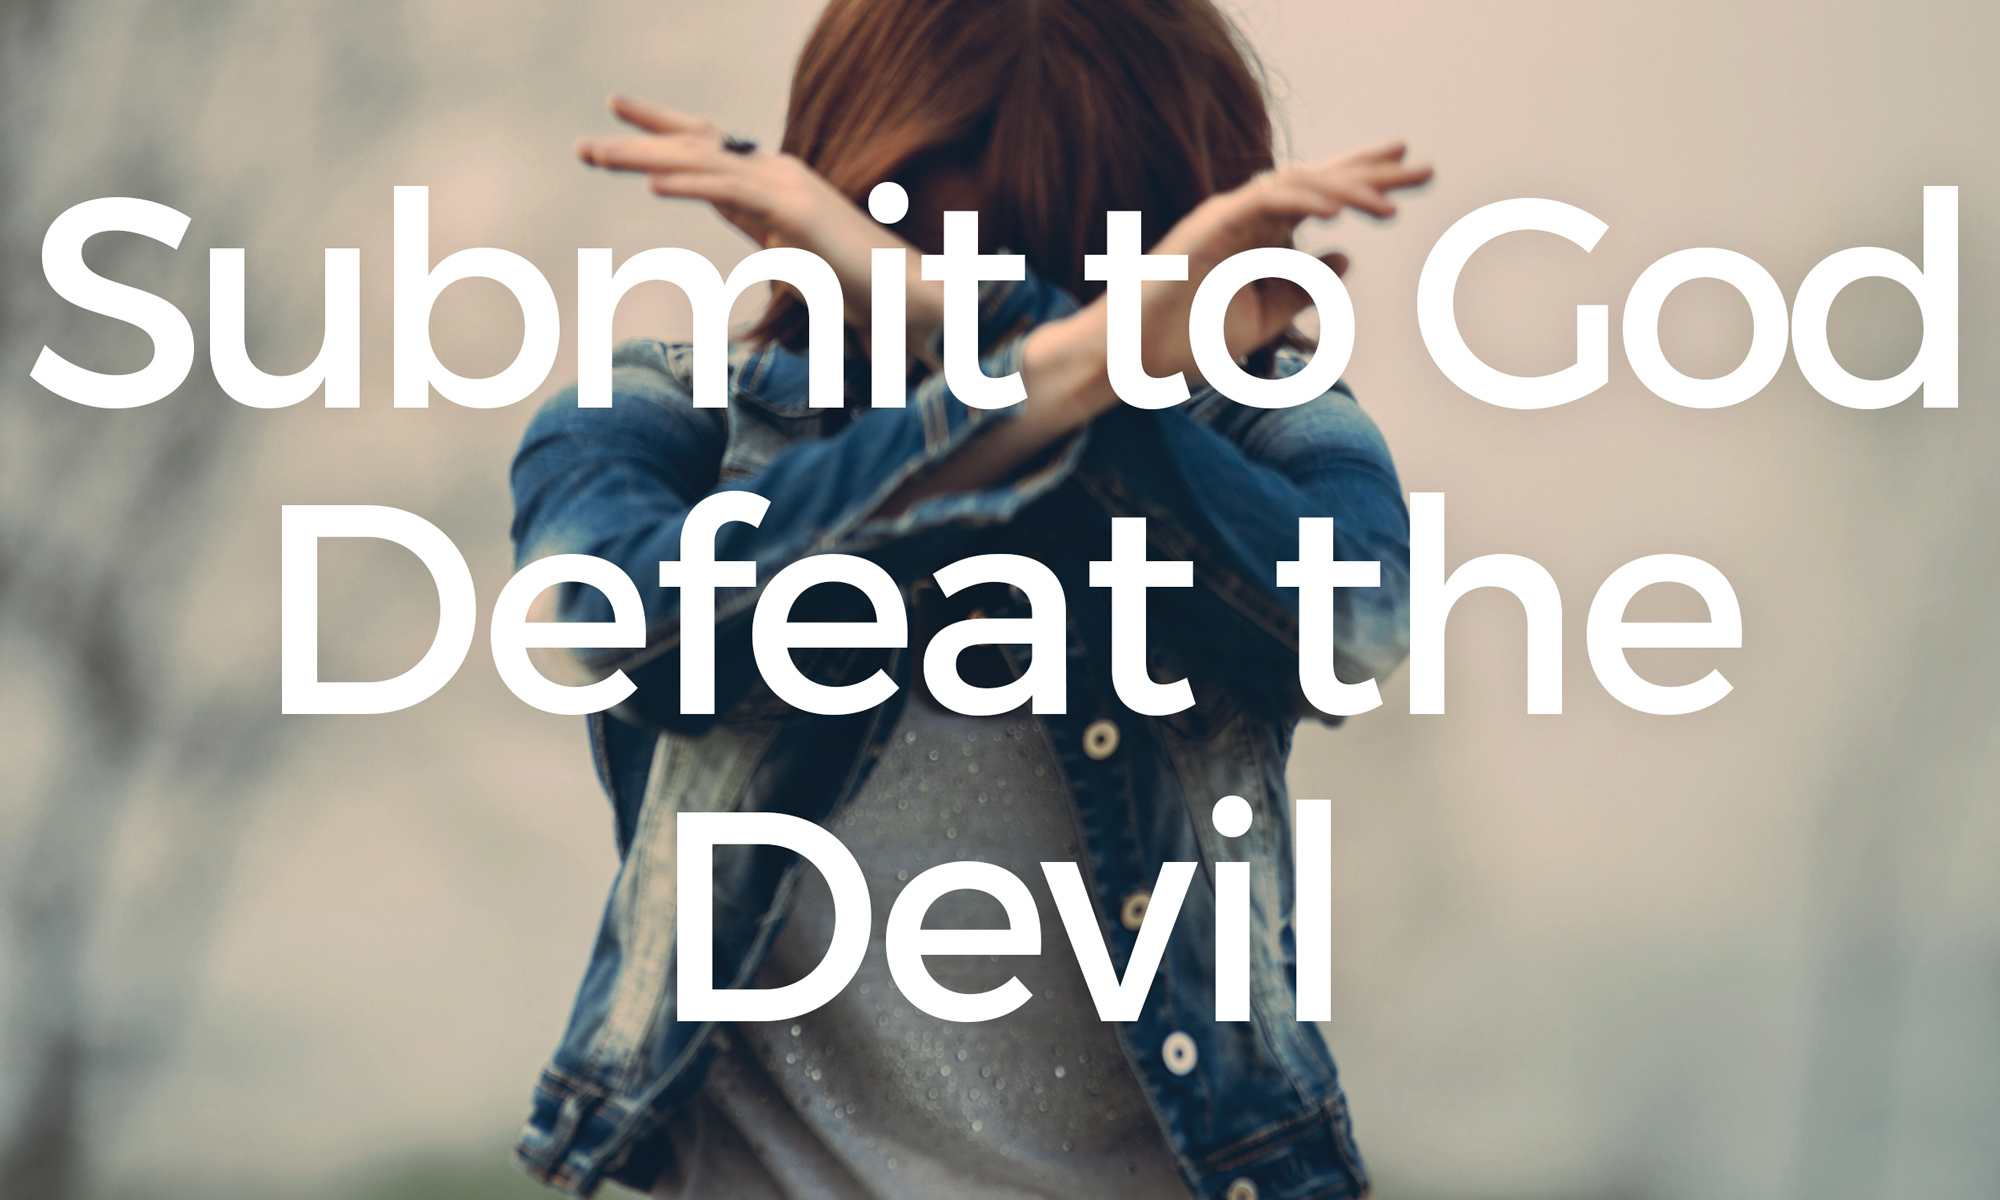 Submit to God and Resist the Devil